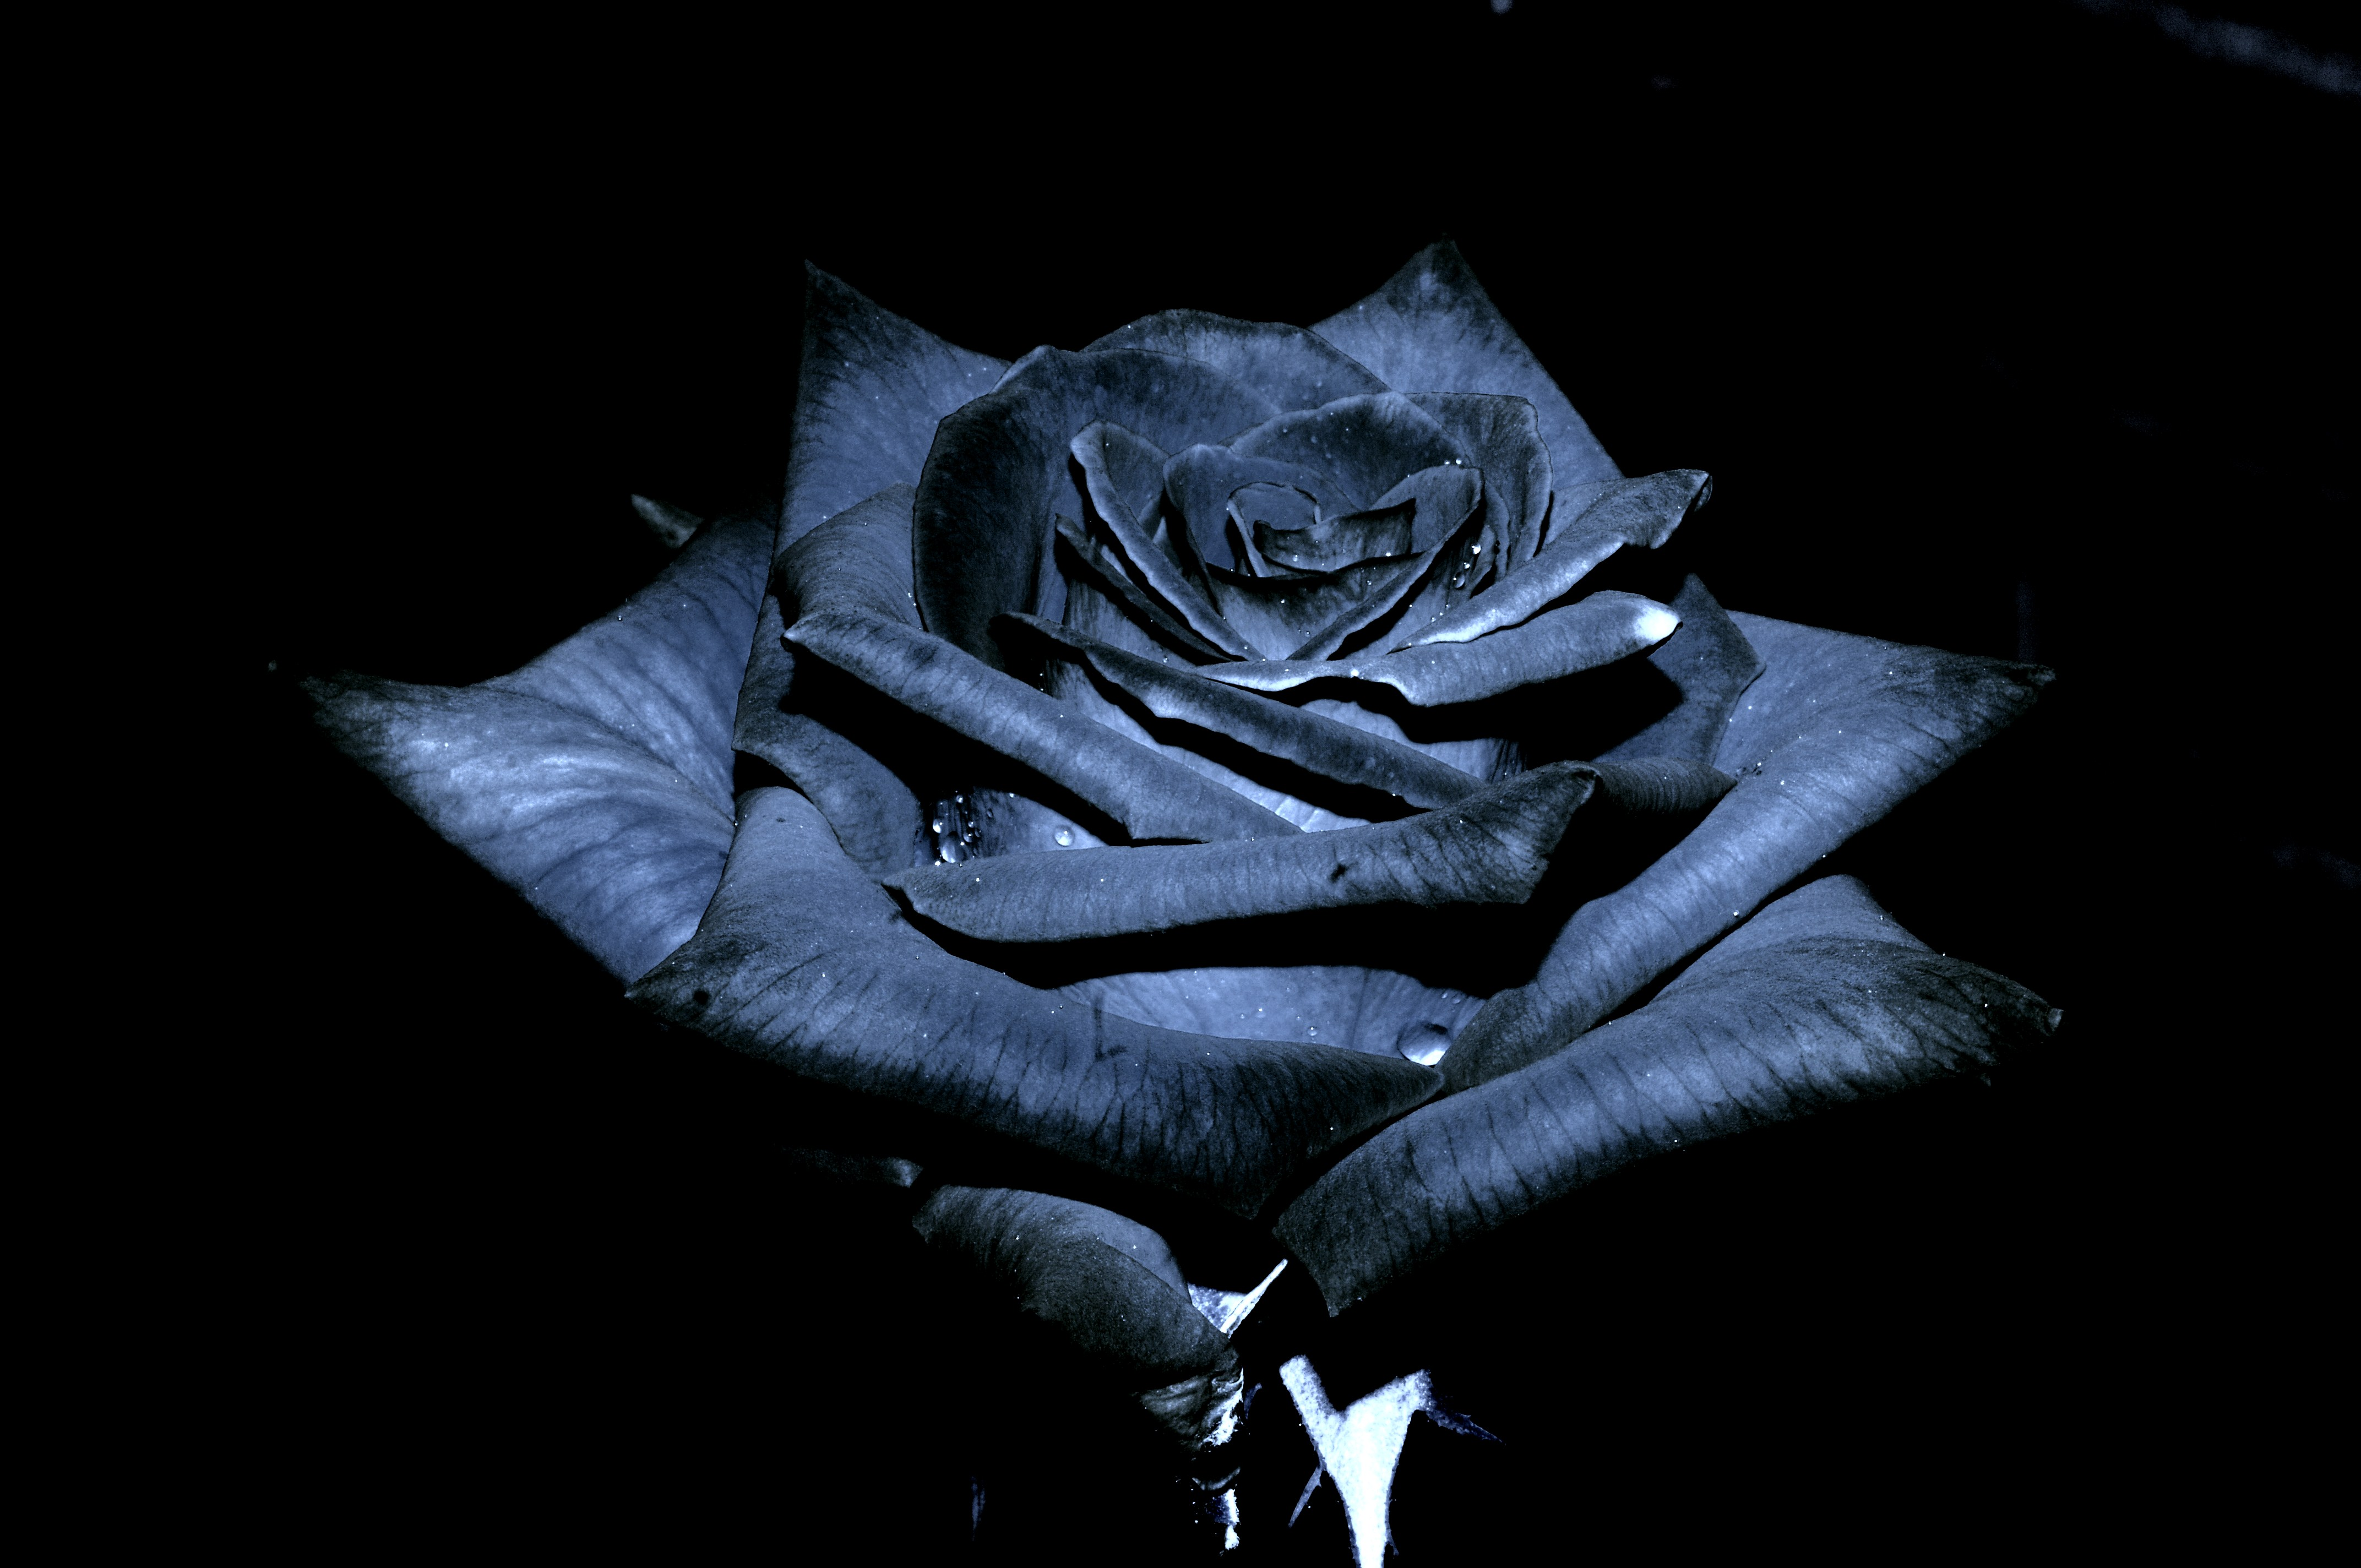 The Black Rose Of Texas by JSF1 on DeviantArt